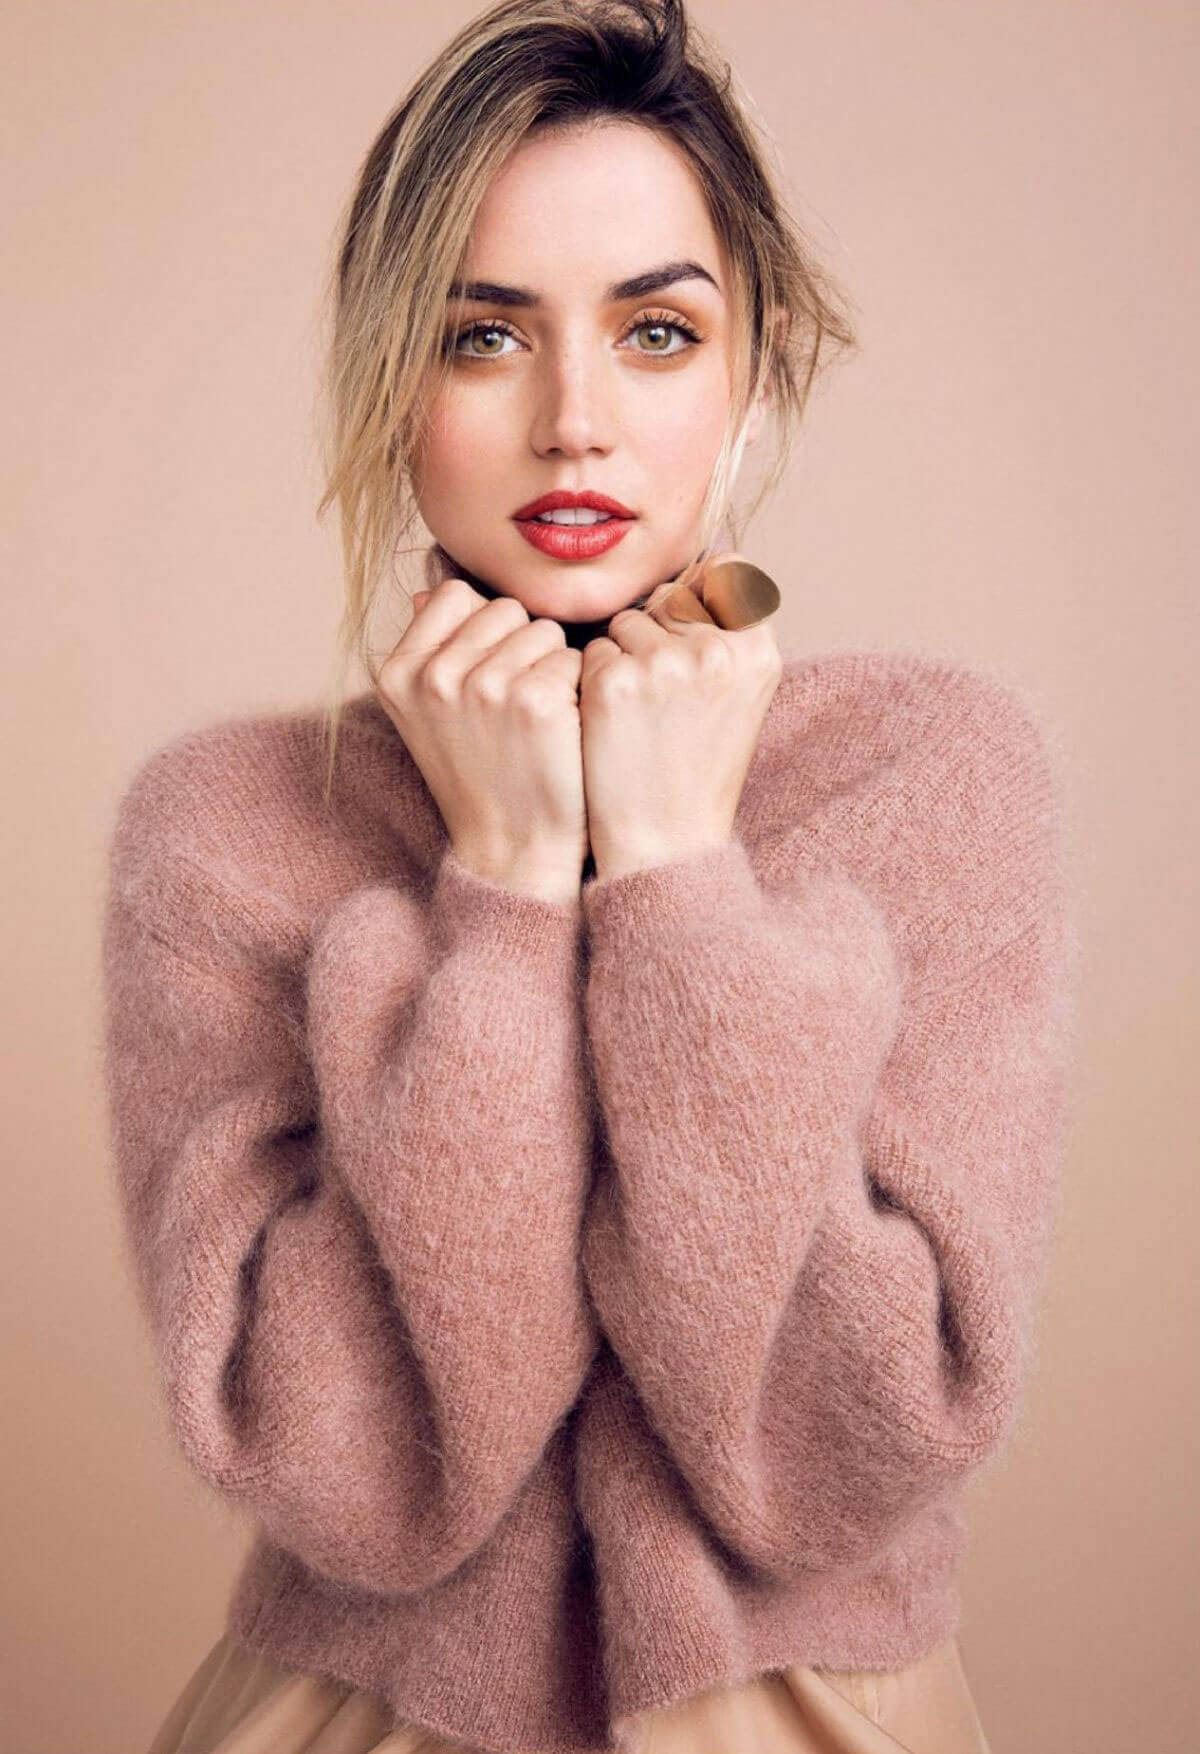 Ana de Armas Poses for Vogue Magazine, Russia October 2017